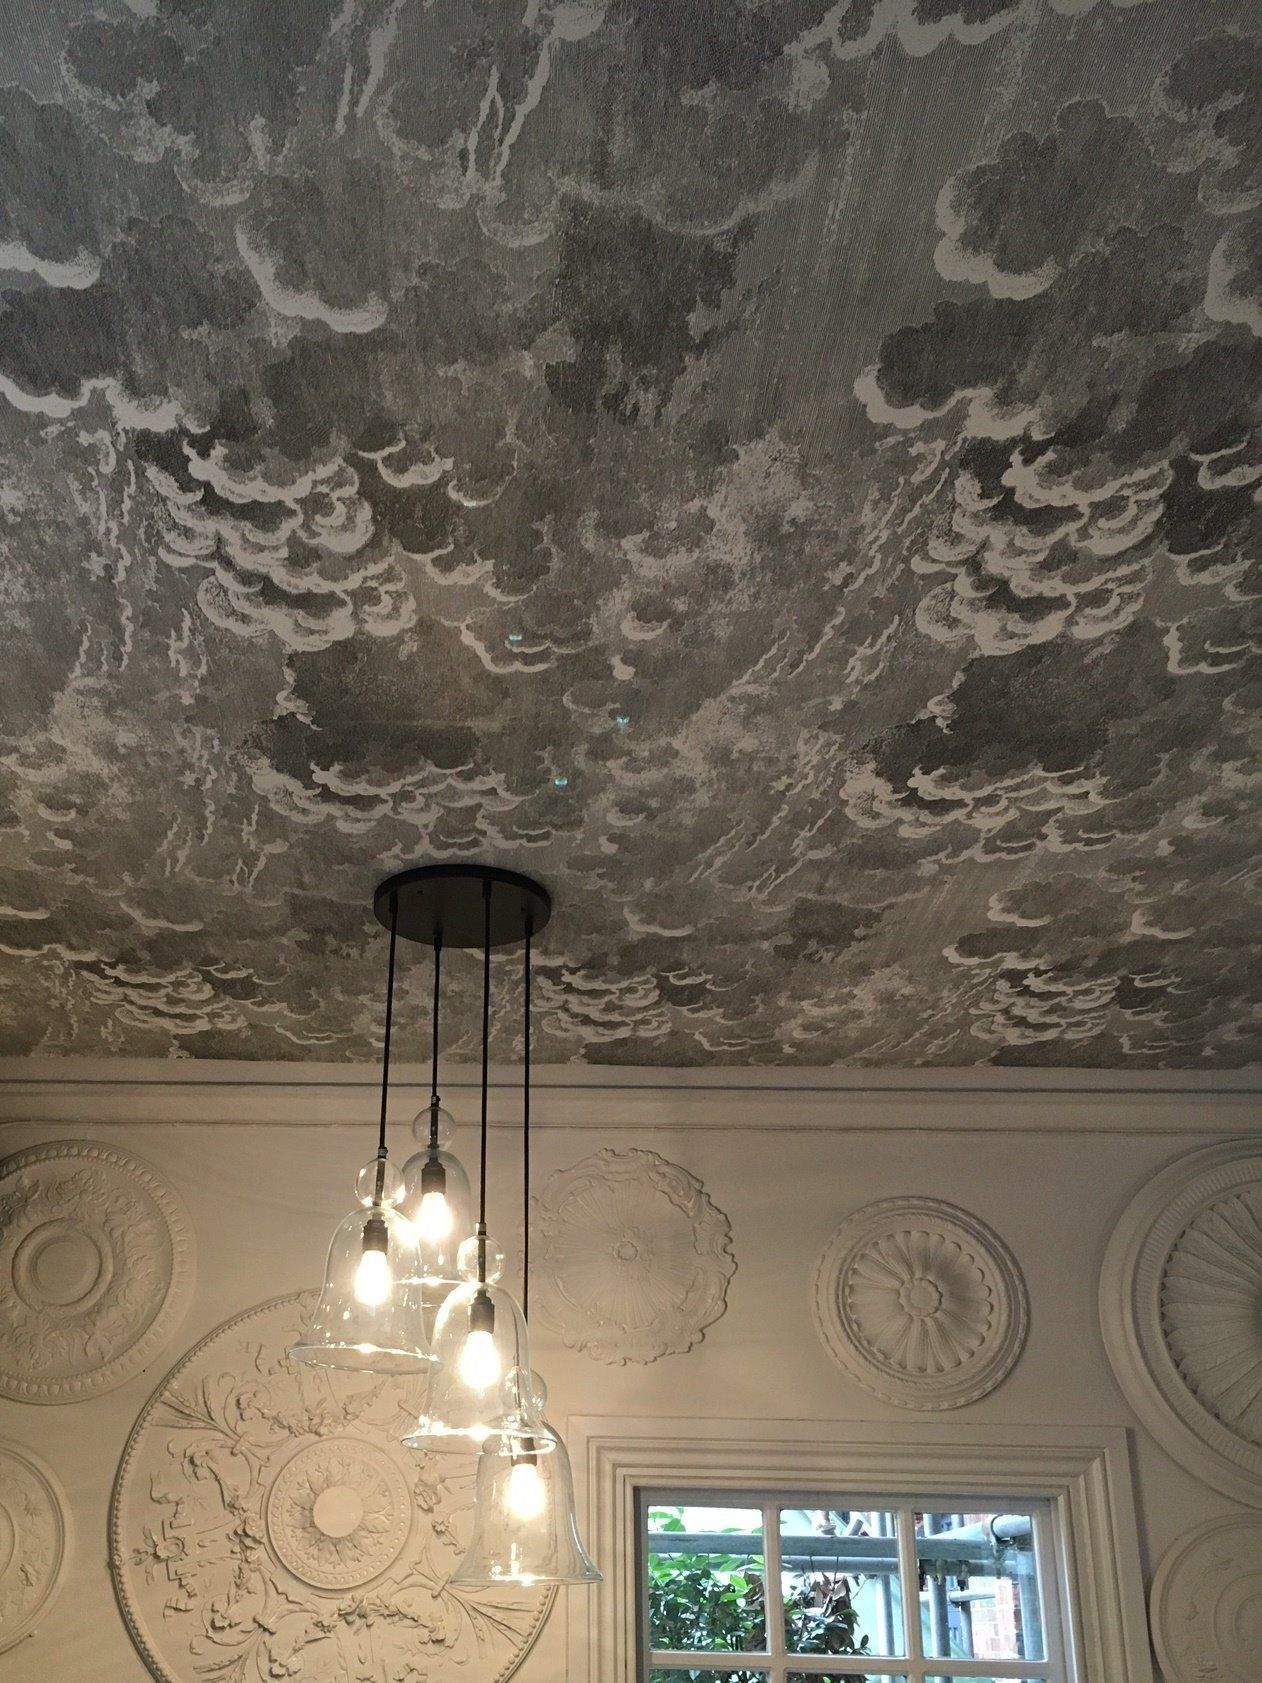 Cloud Wallpaper For Bedroom Cole And Son Cloud Wallpaper 39fornasetti Ii Nuvolette